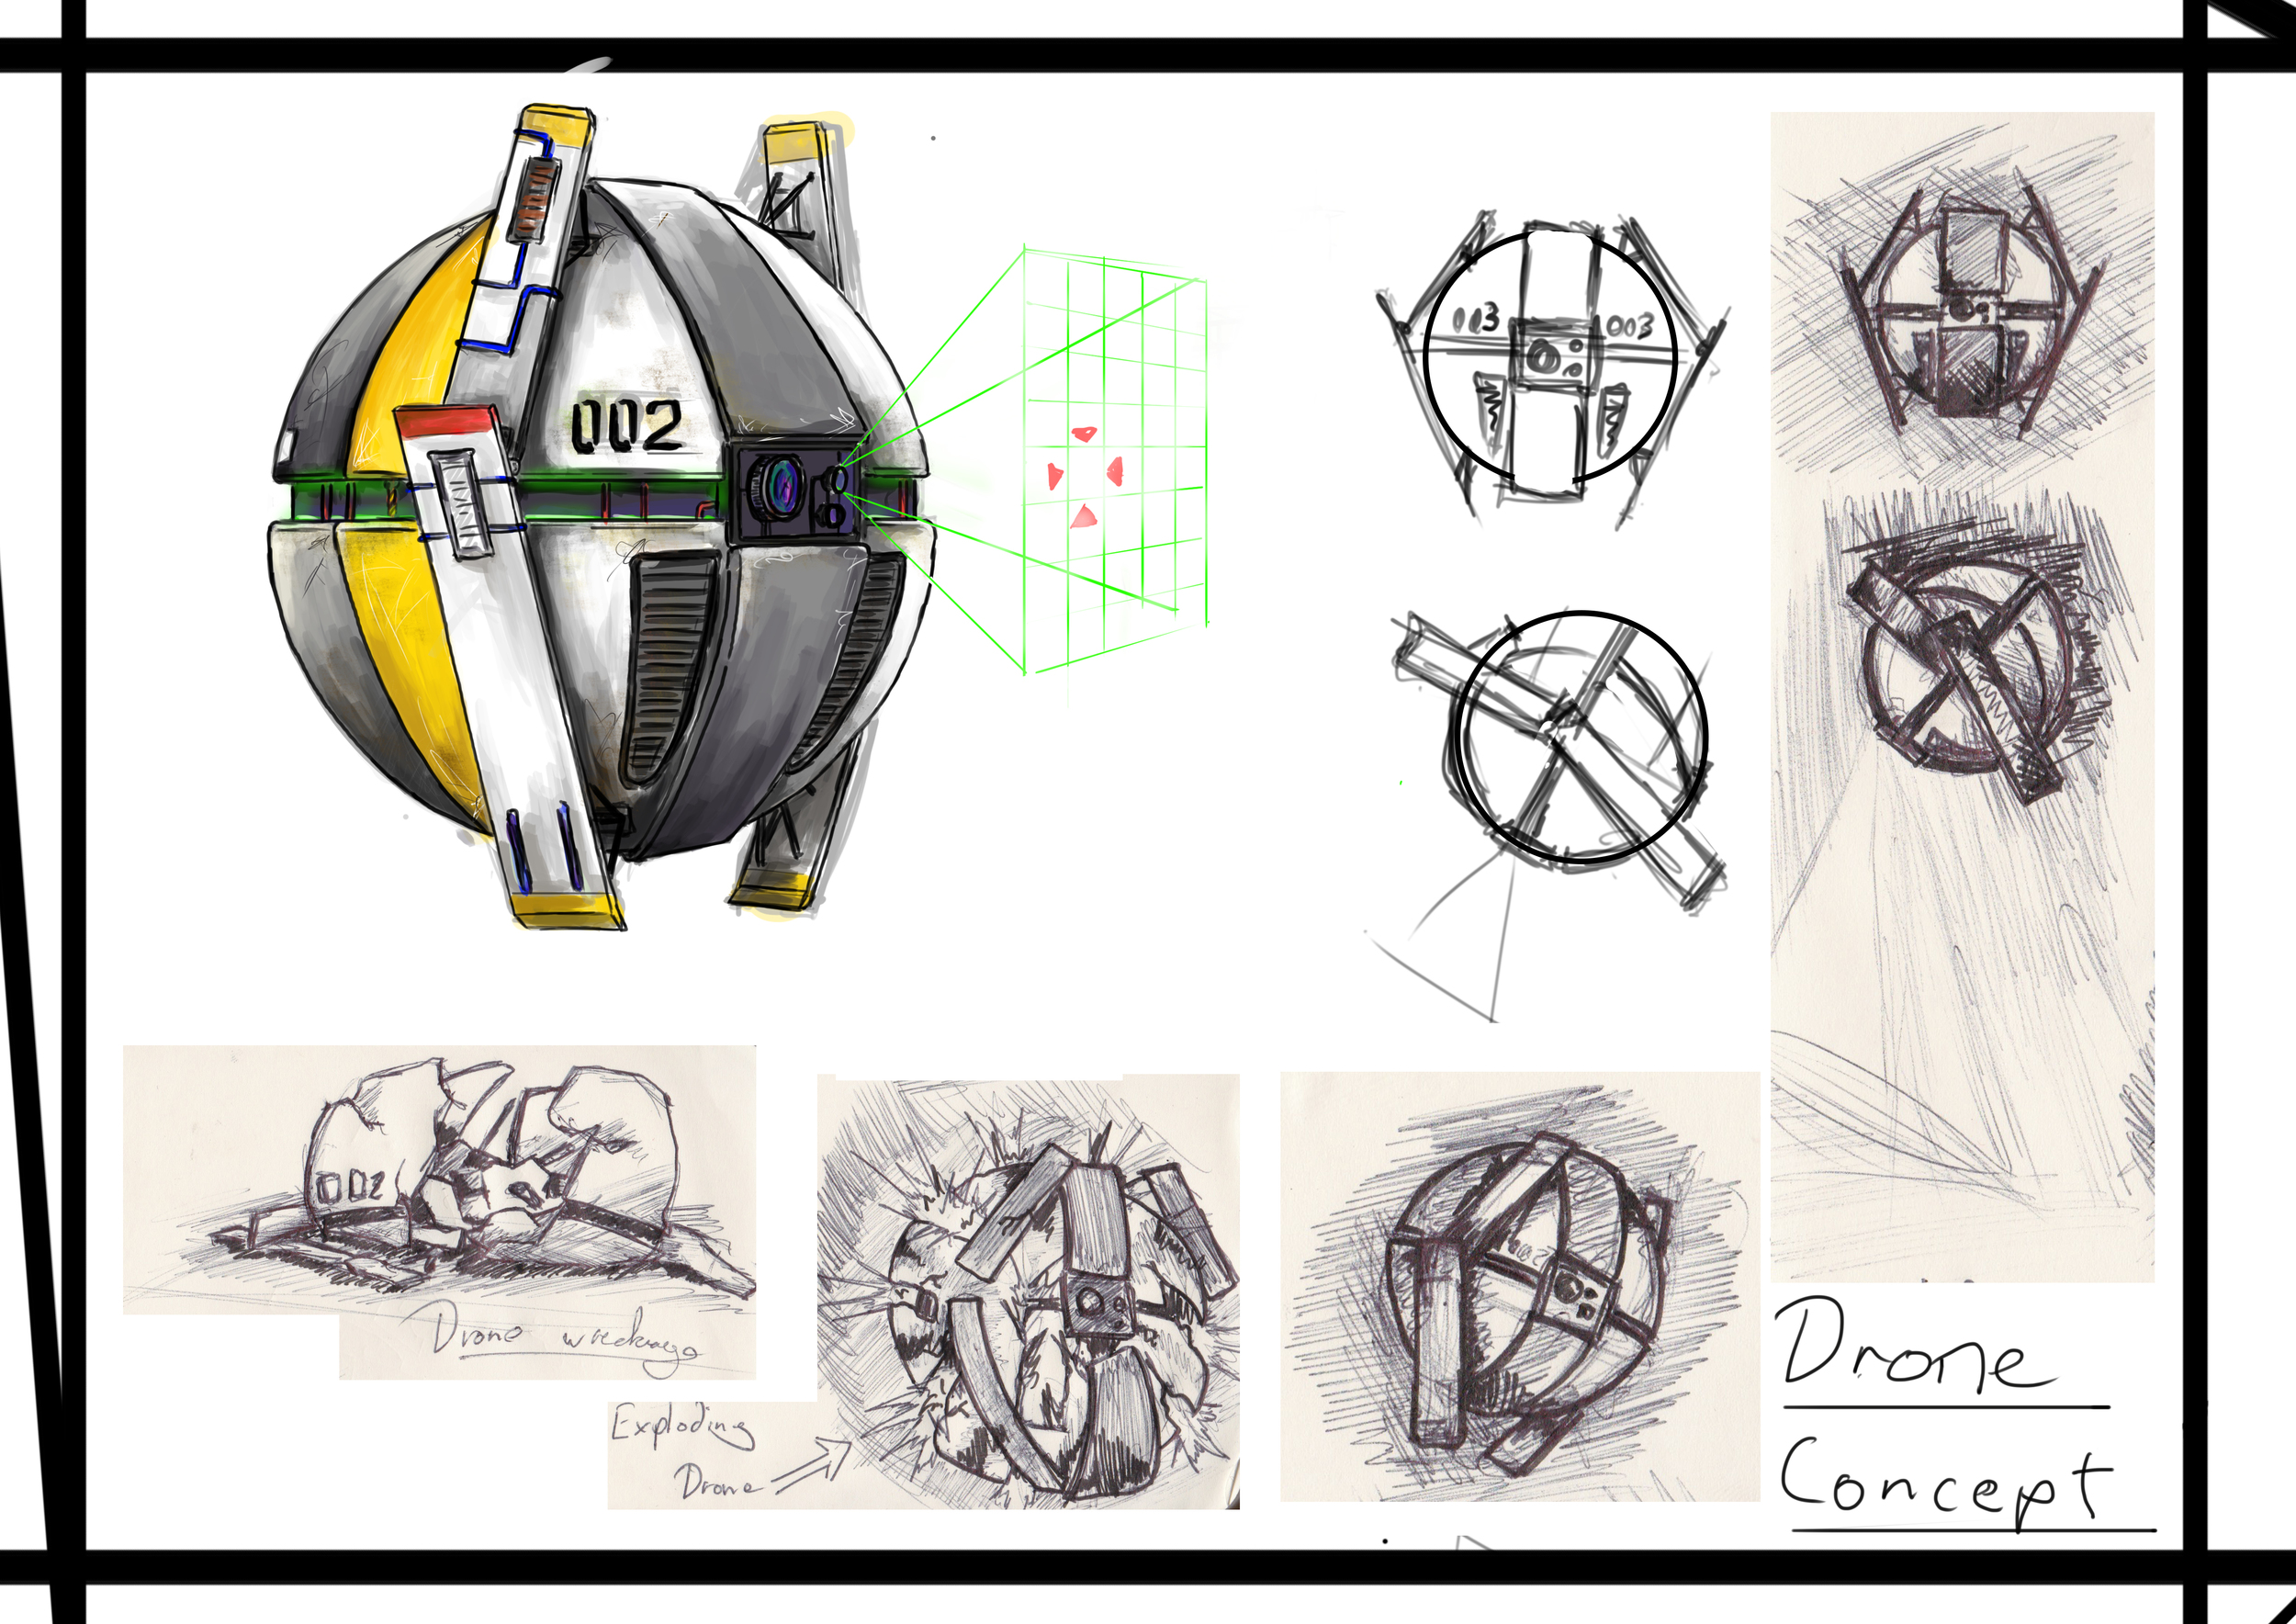 This is the concept for the drone.